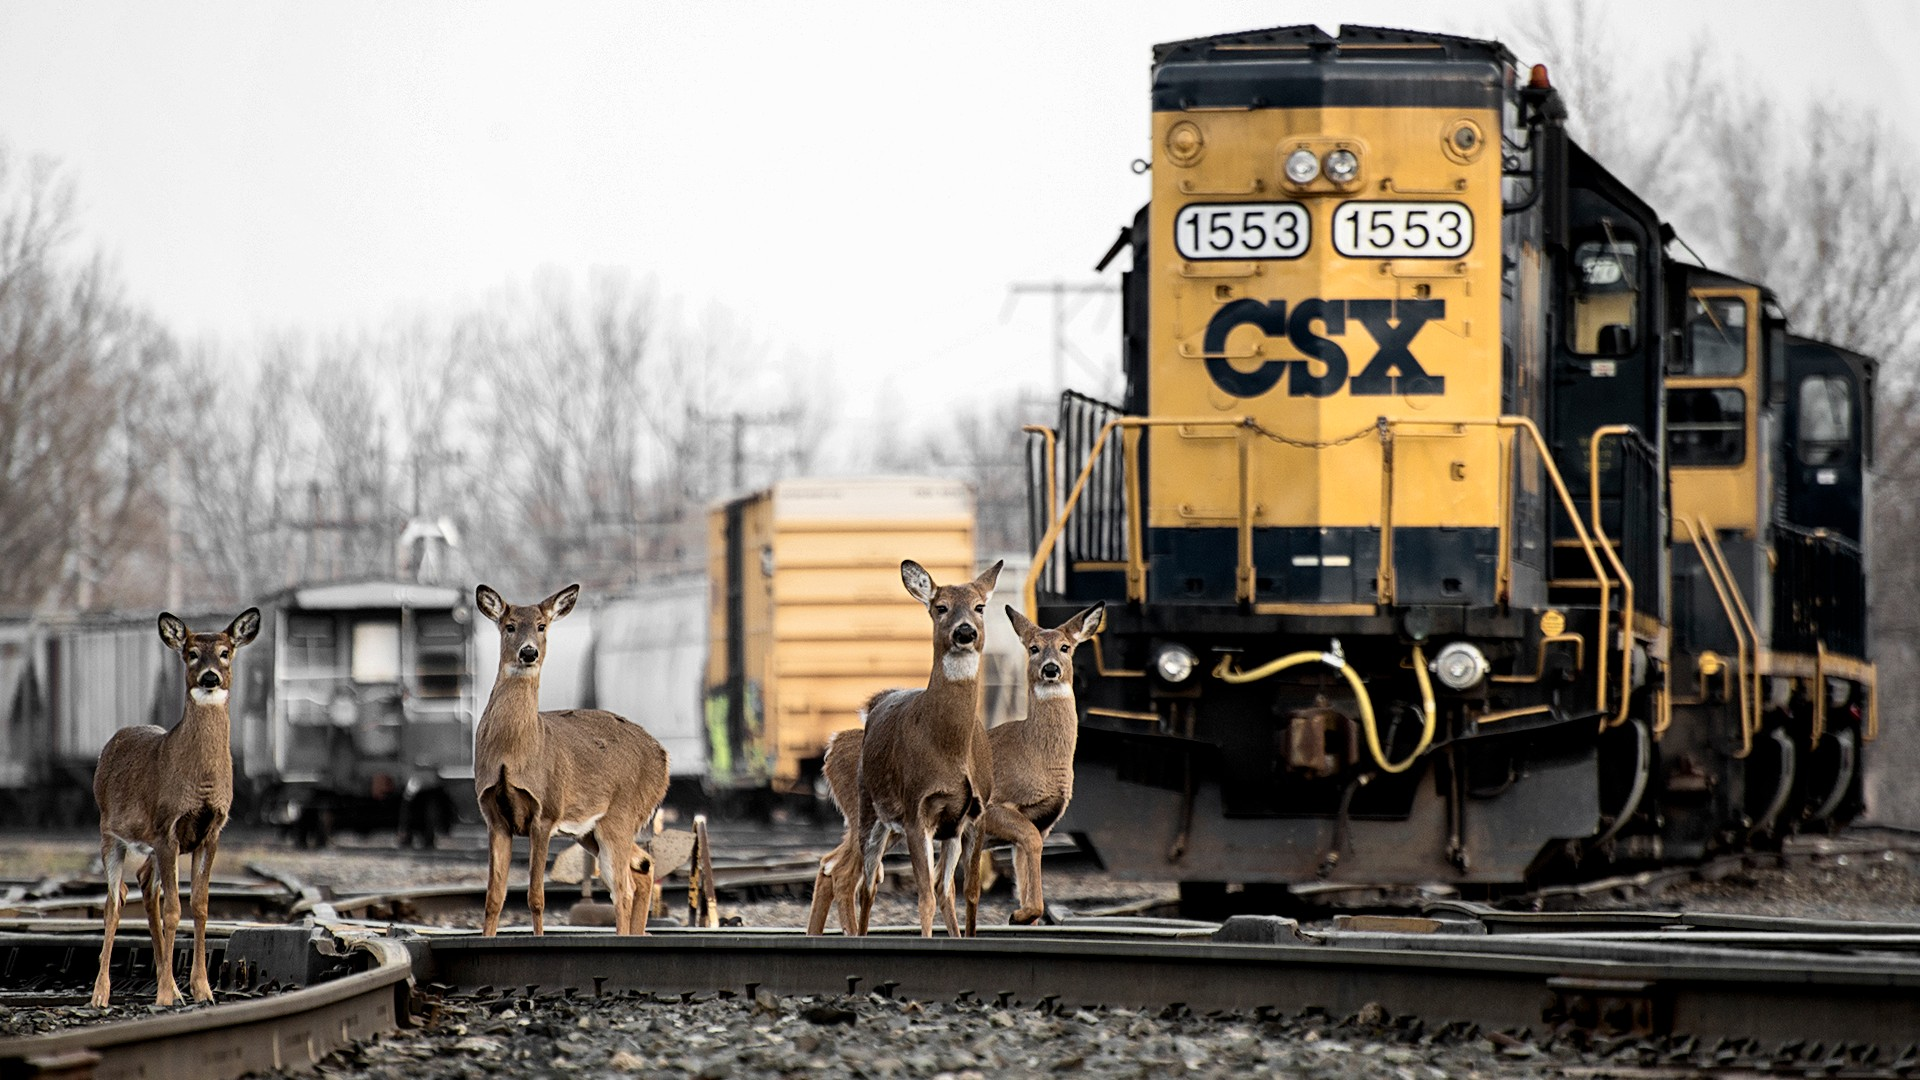 Deer on train tracks